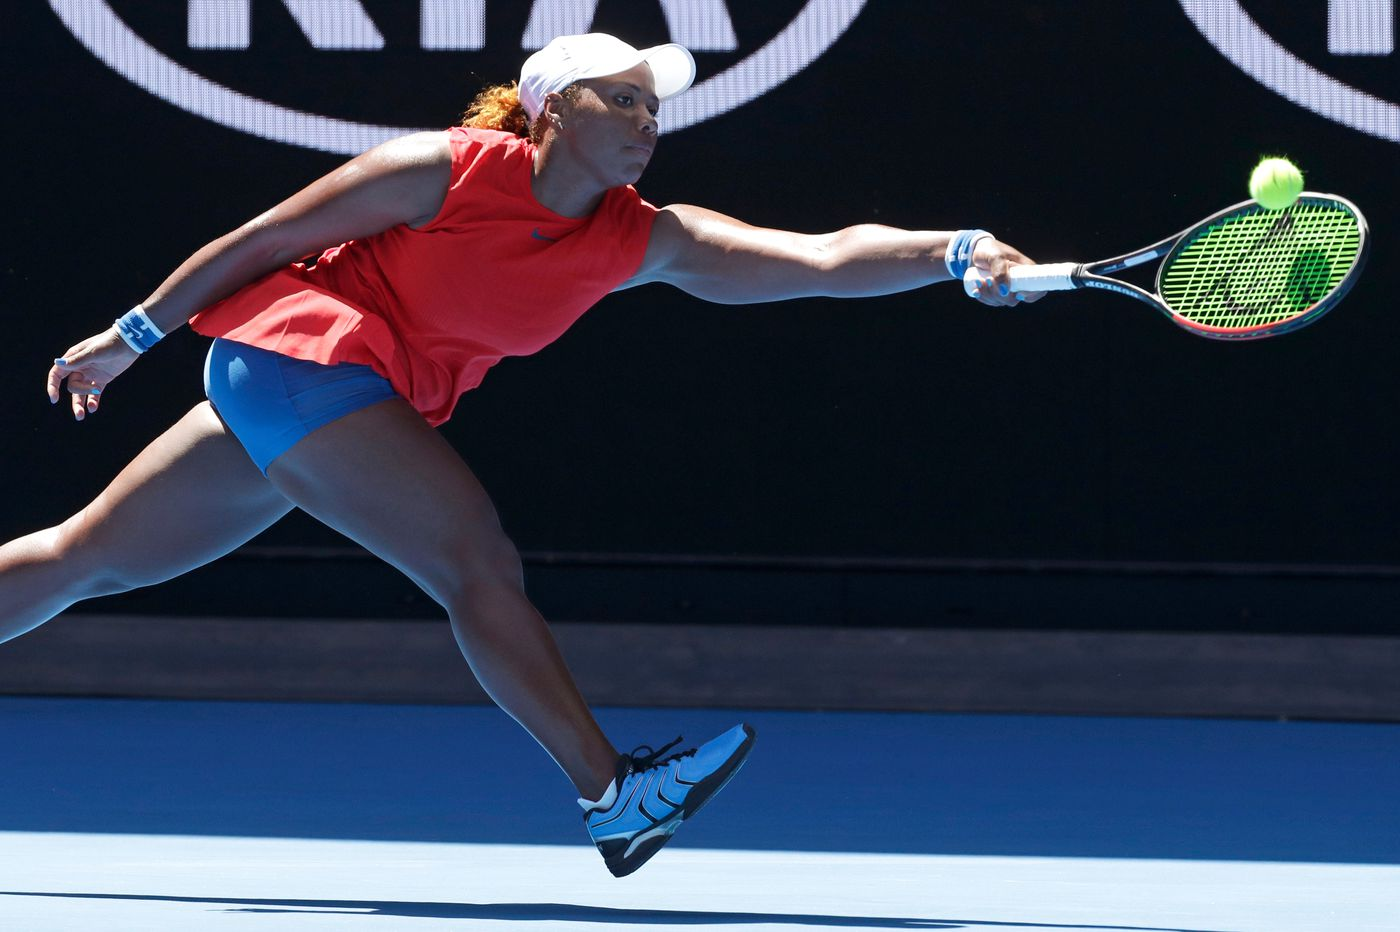 Philadelphia Freedoms, Taylor Townsend gearing up for another postseason run